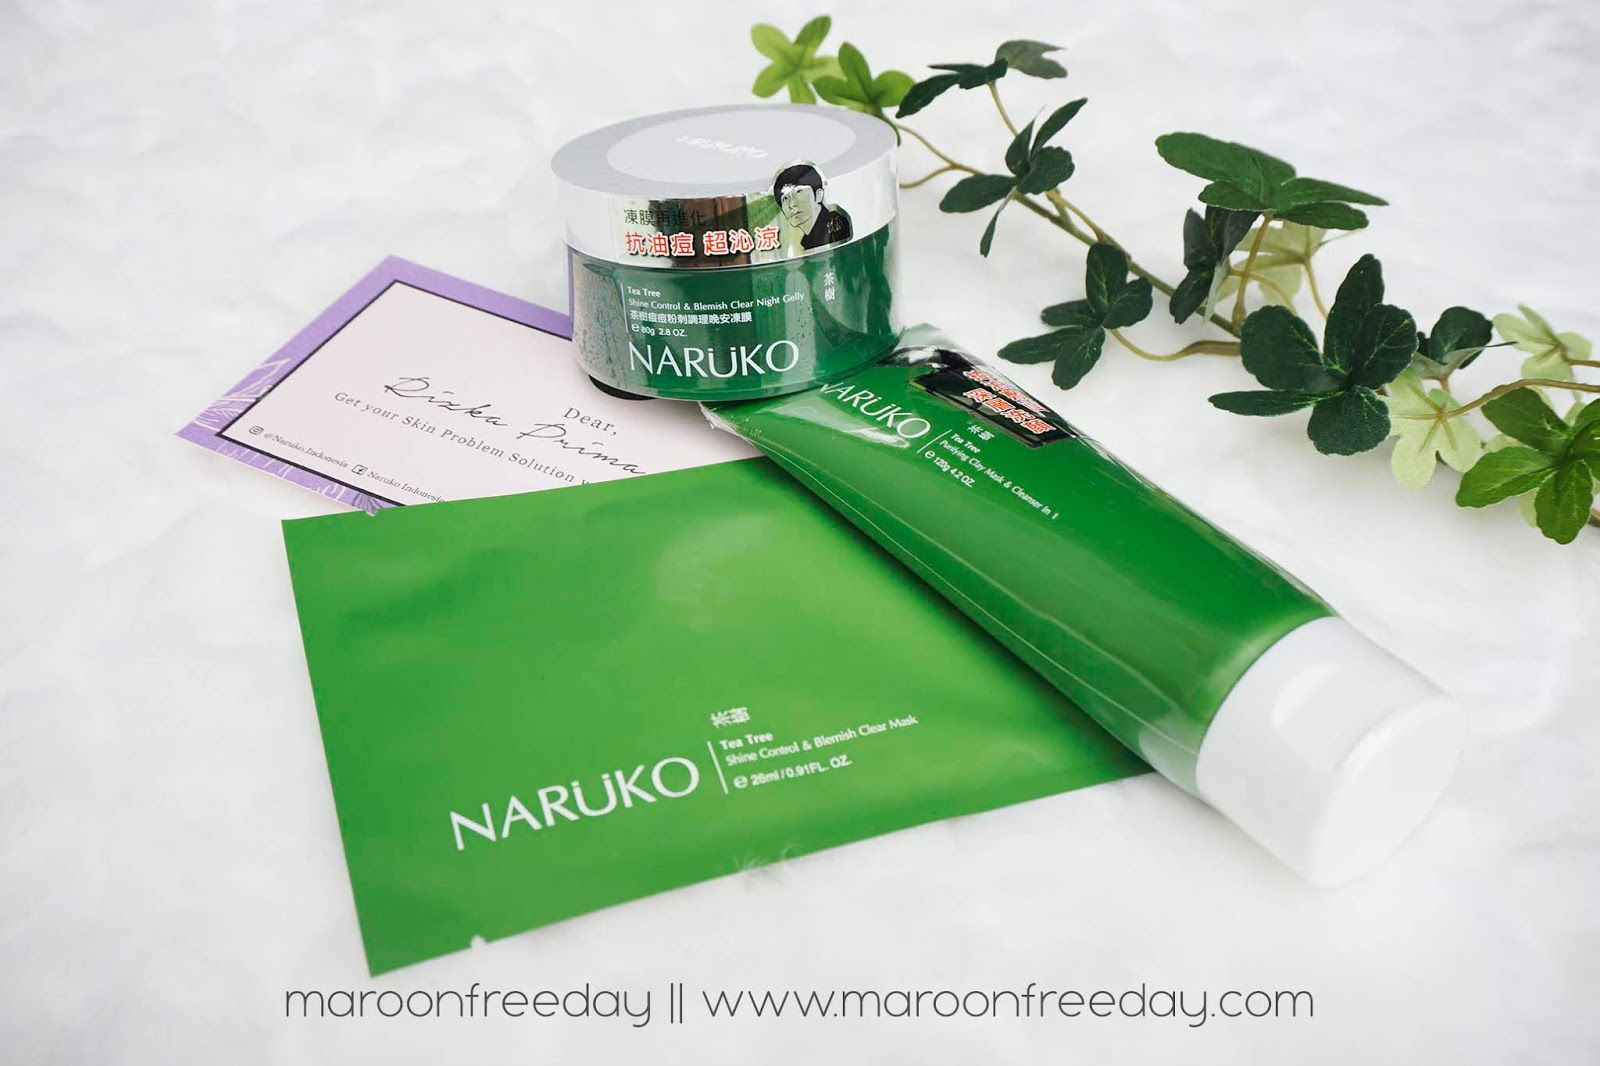 Naruko Tea Tree Series